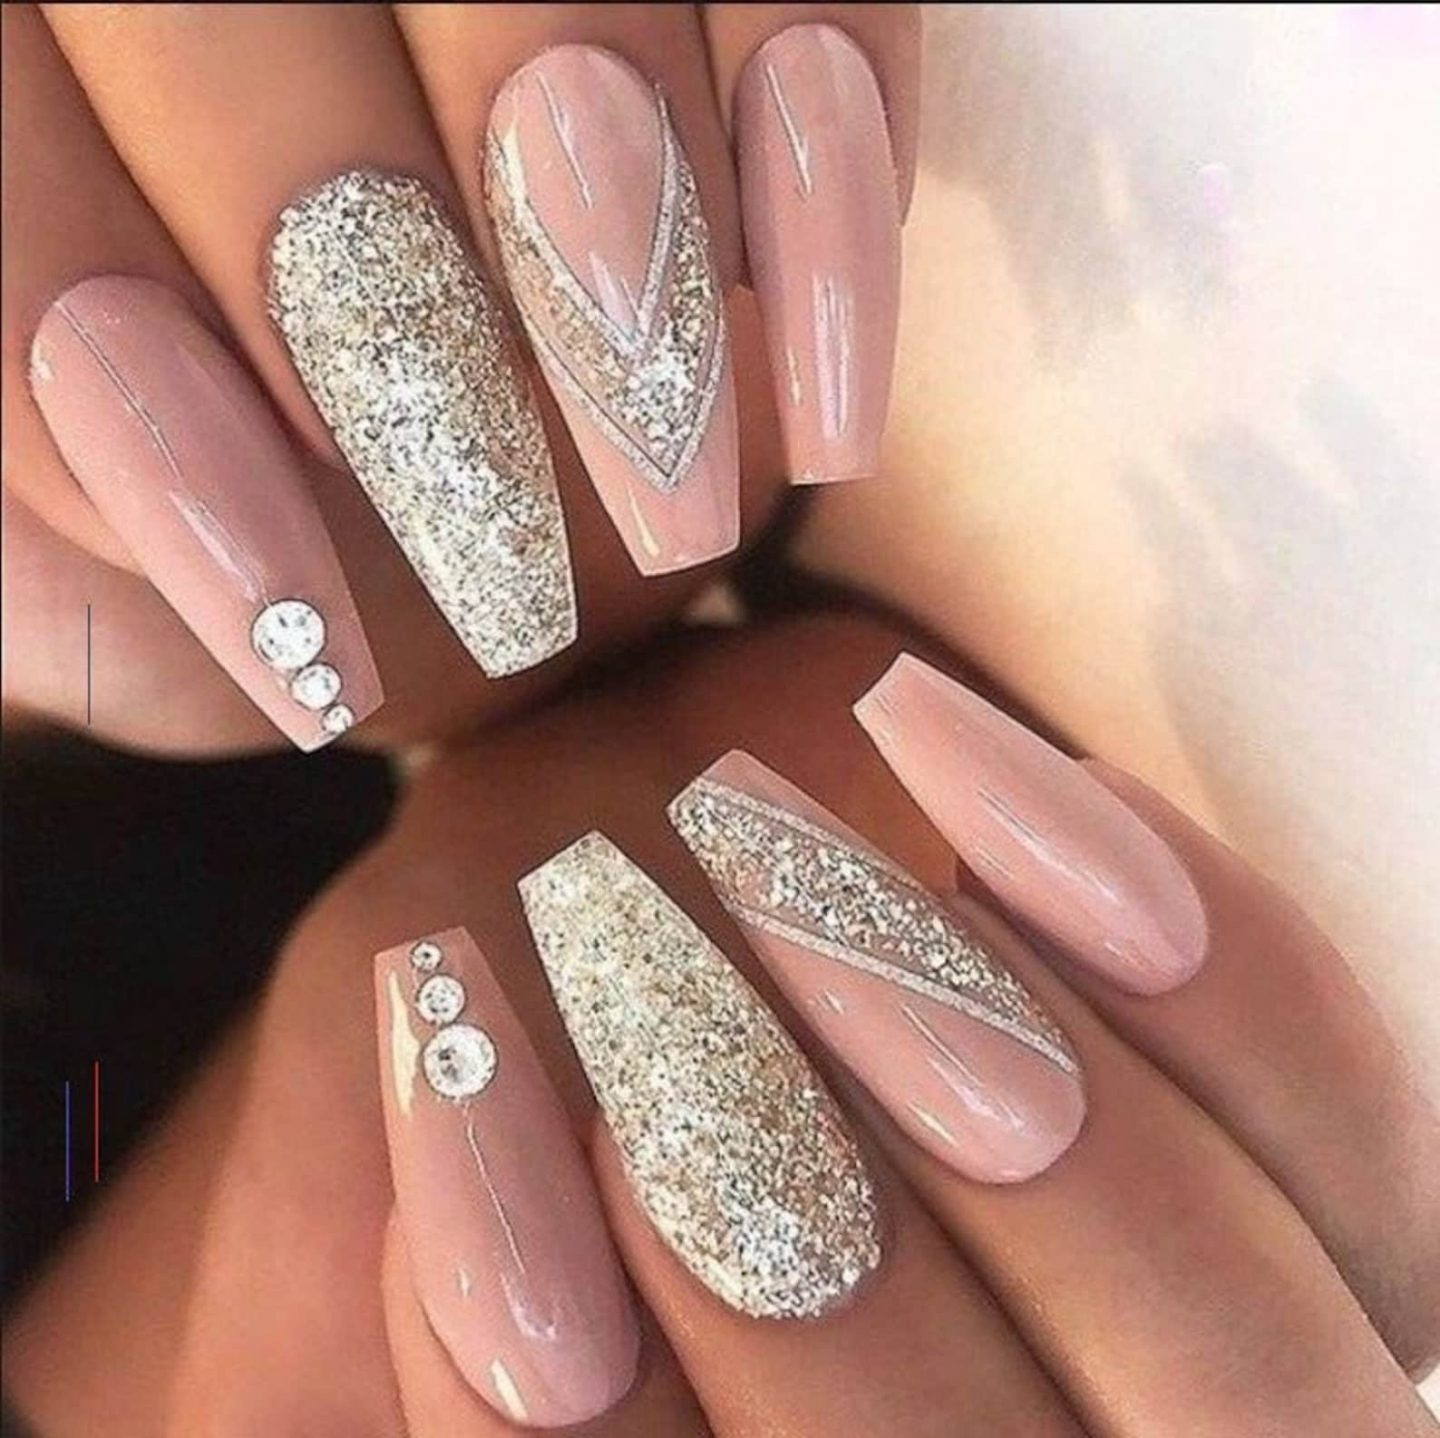 Long pink and champagne gold nails with glitter